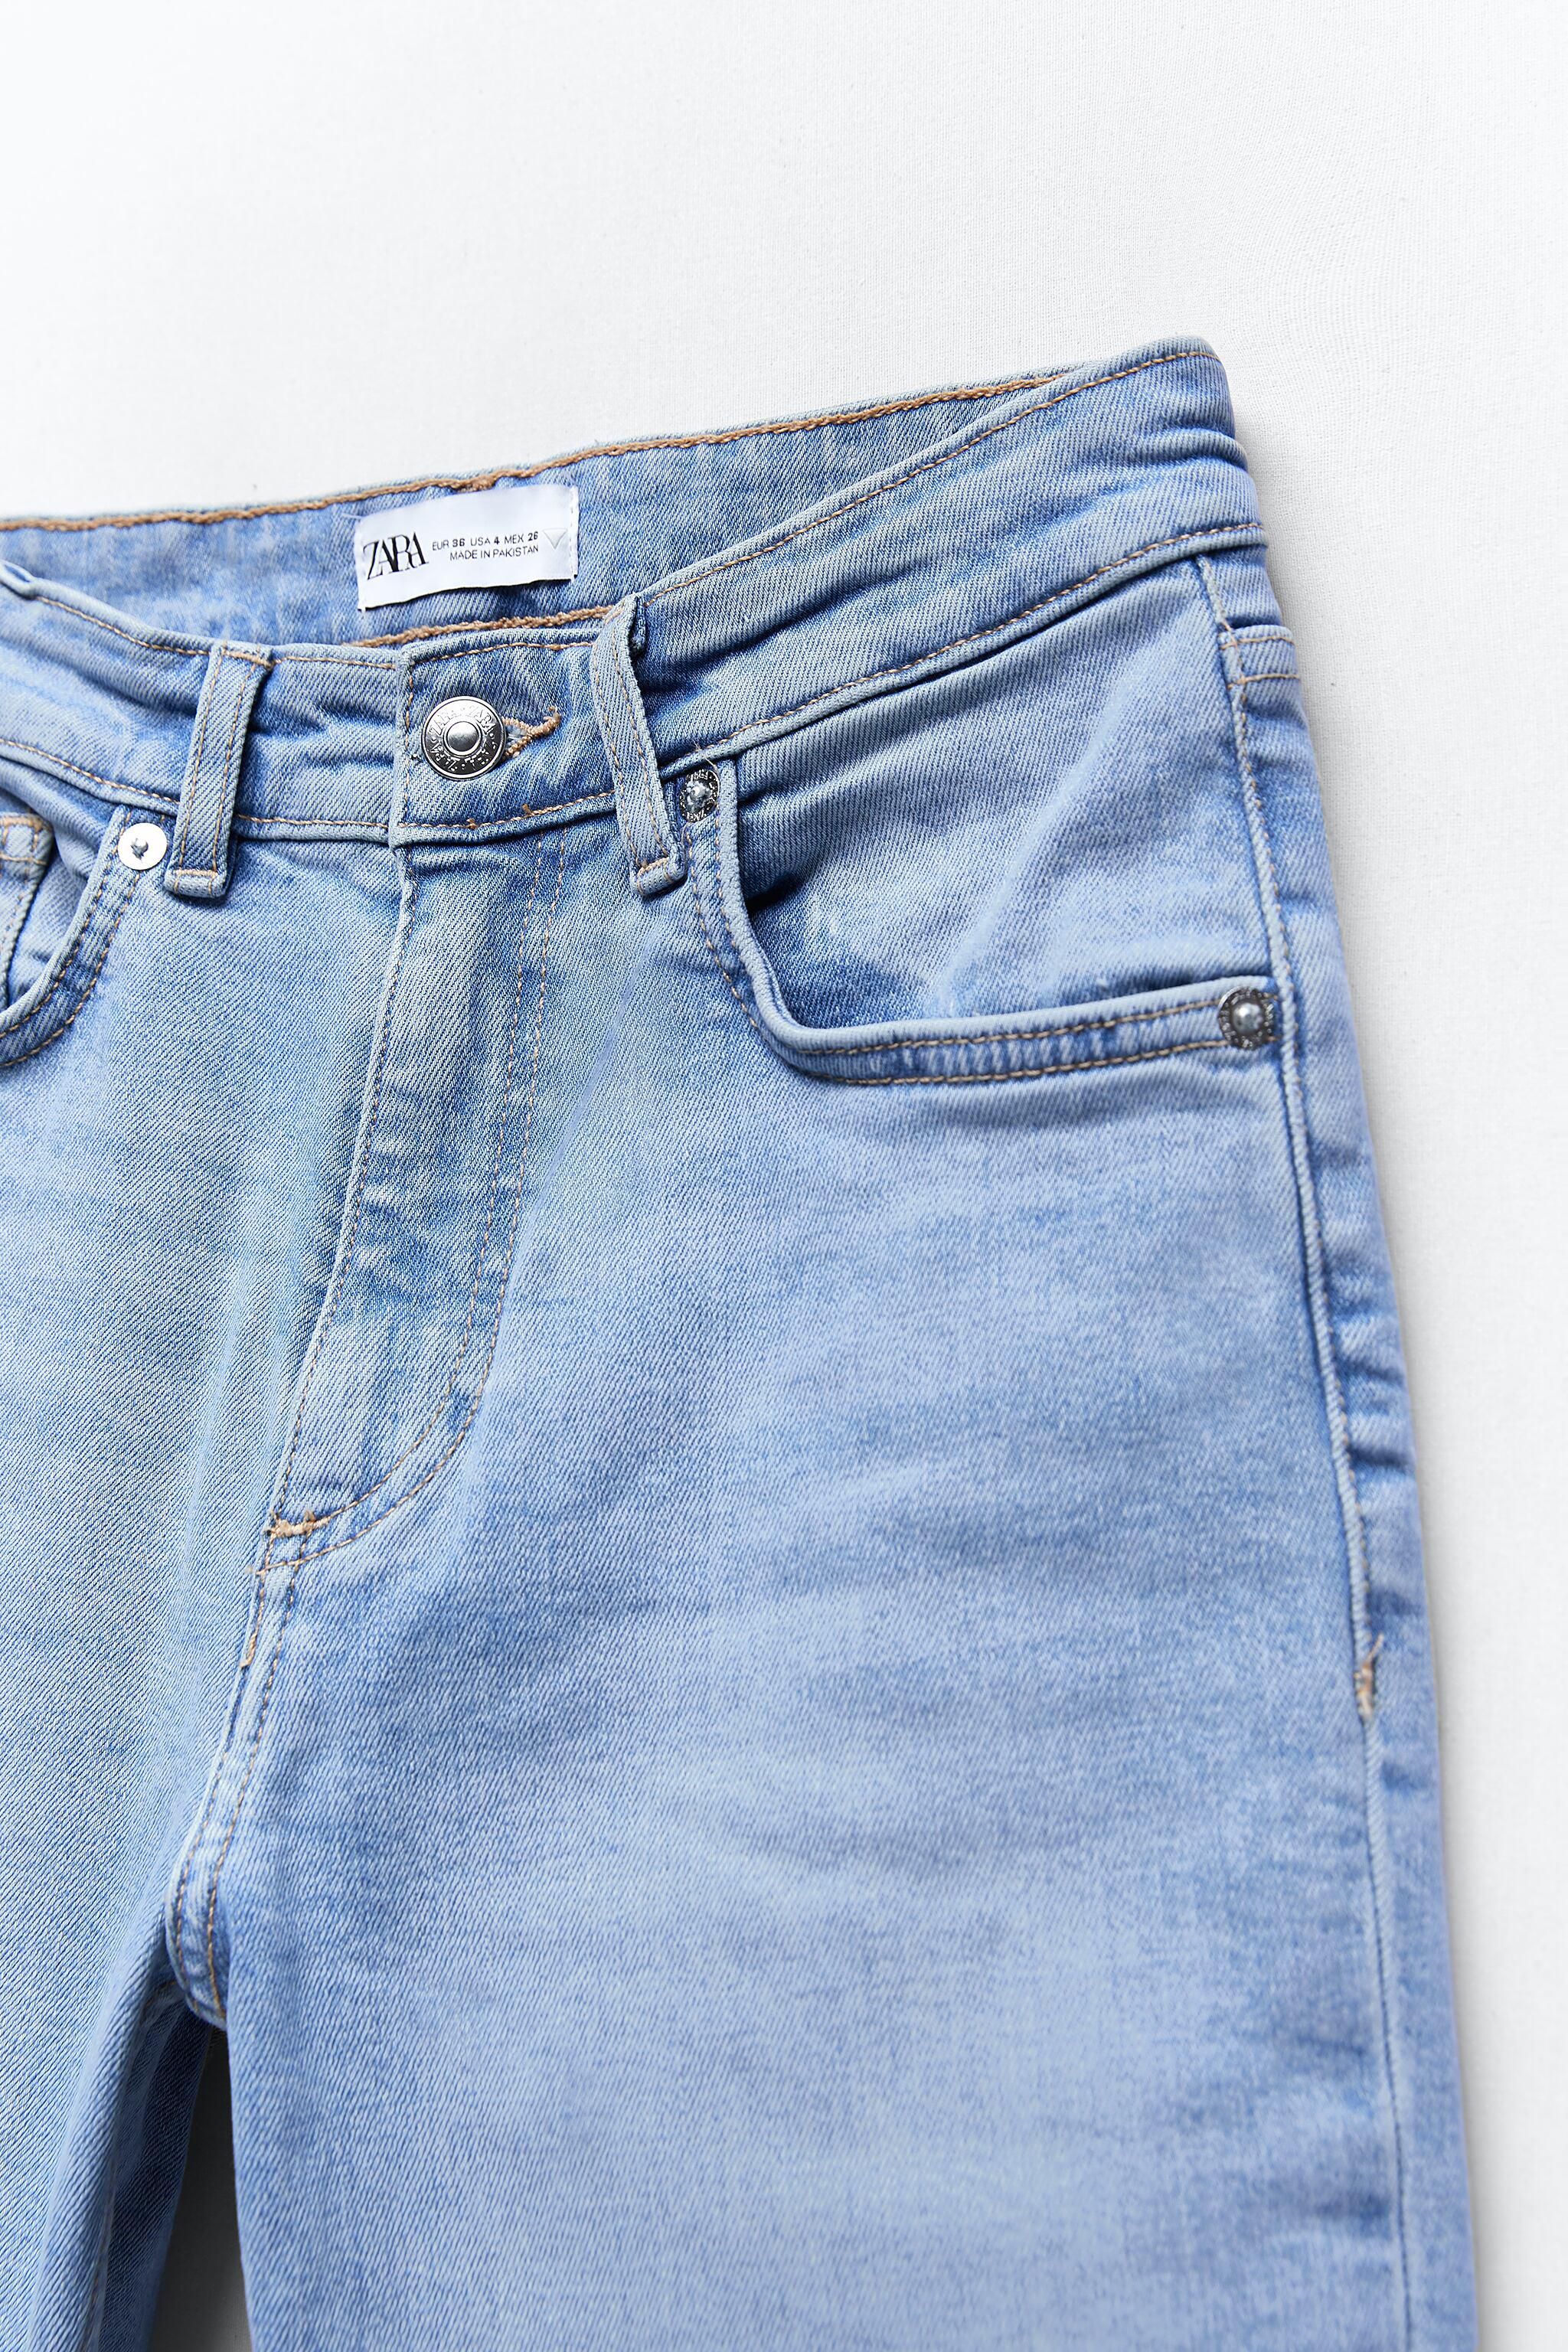 CROPPED FLARE JEANS 8